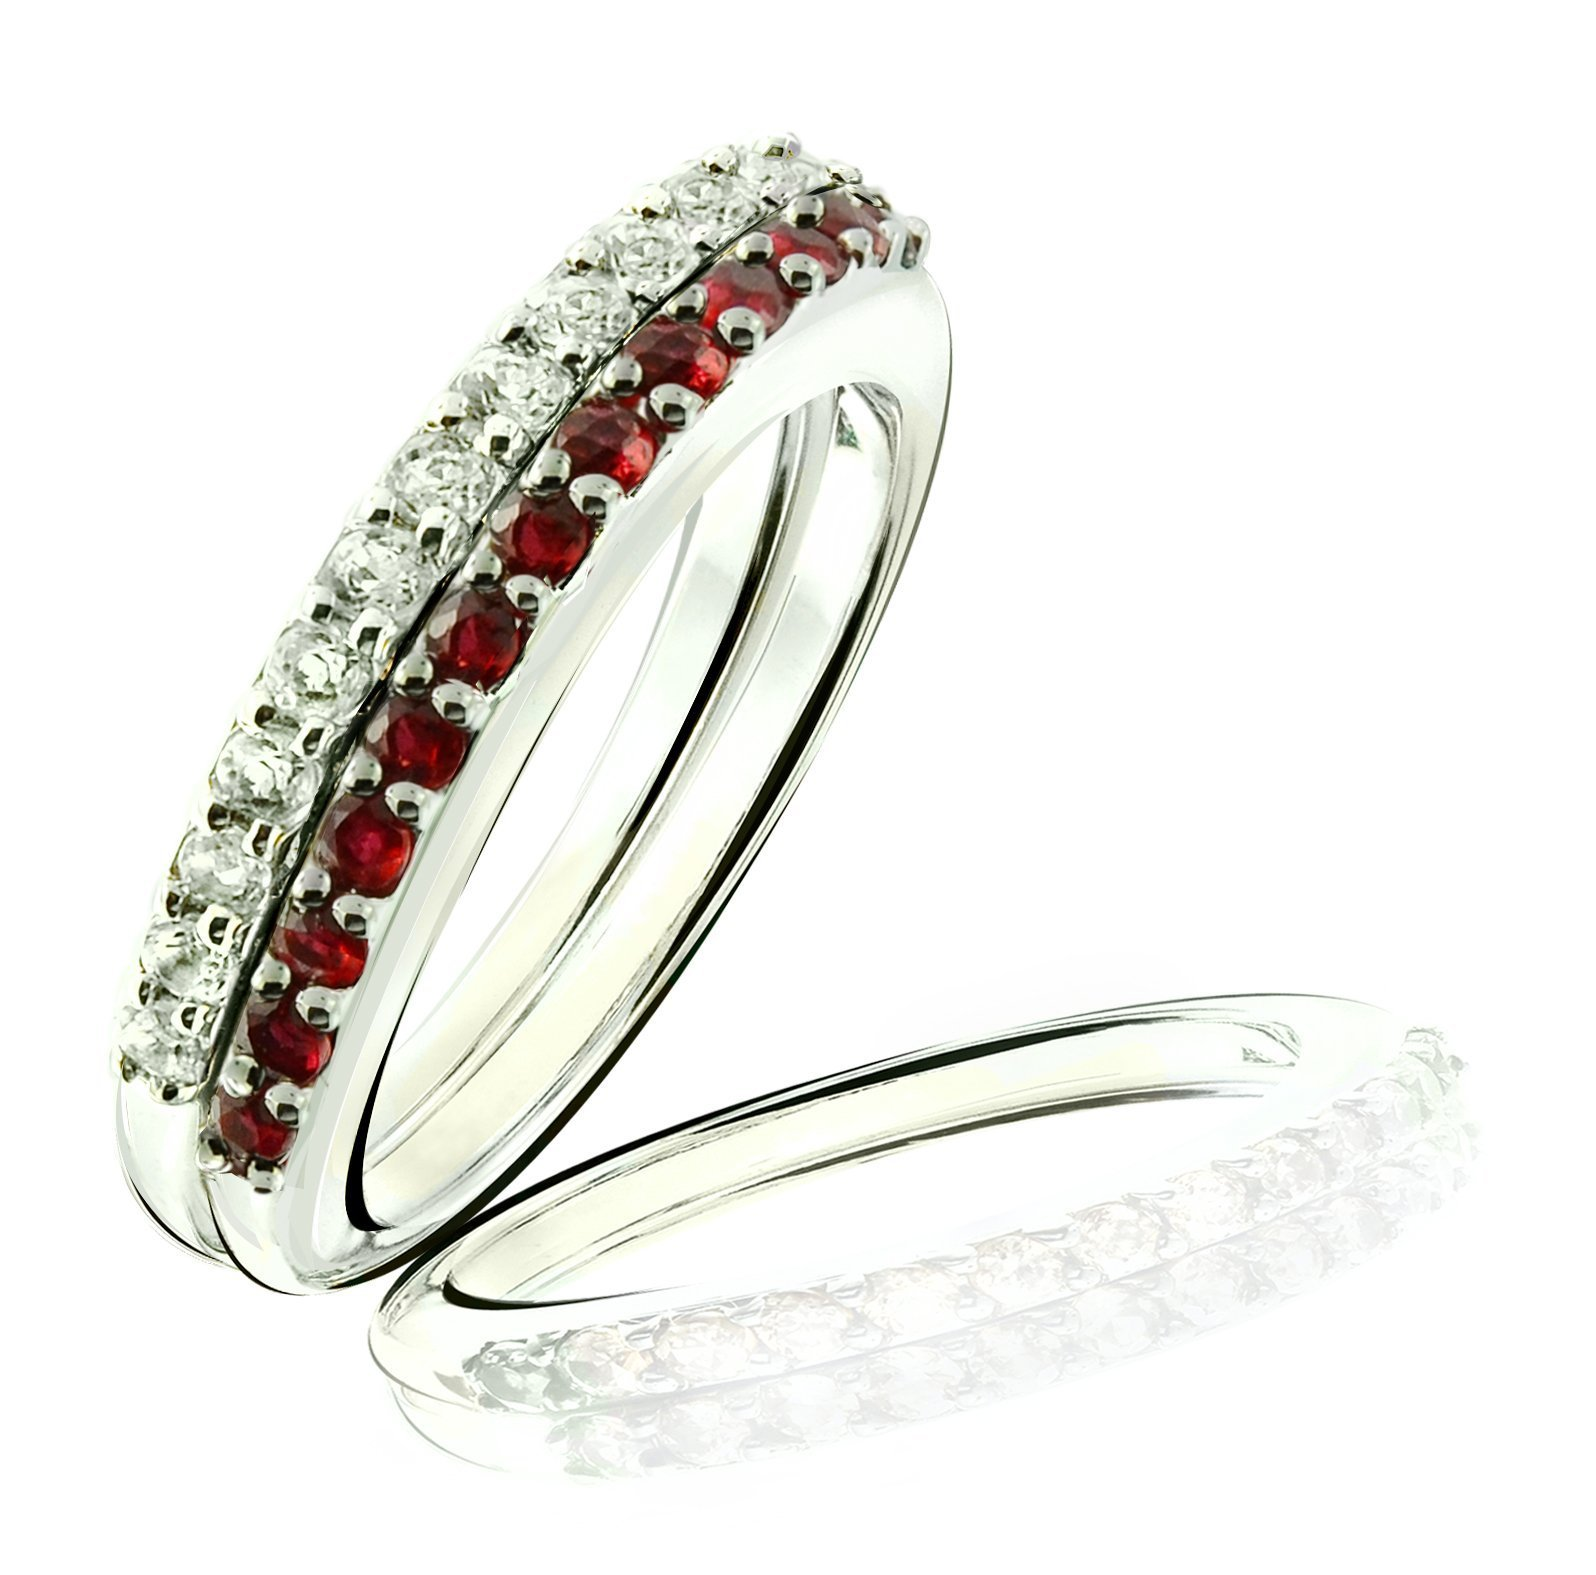 RB Gems Sterling Silver 925 Set of 2 Stack Rings GENUINE GEMS (BLUE TOPAZ, RUBY) RHODIUM-PLATED Finish (11, ruby)